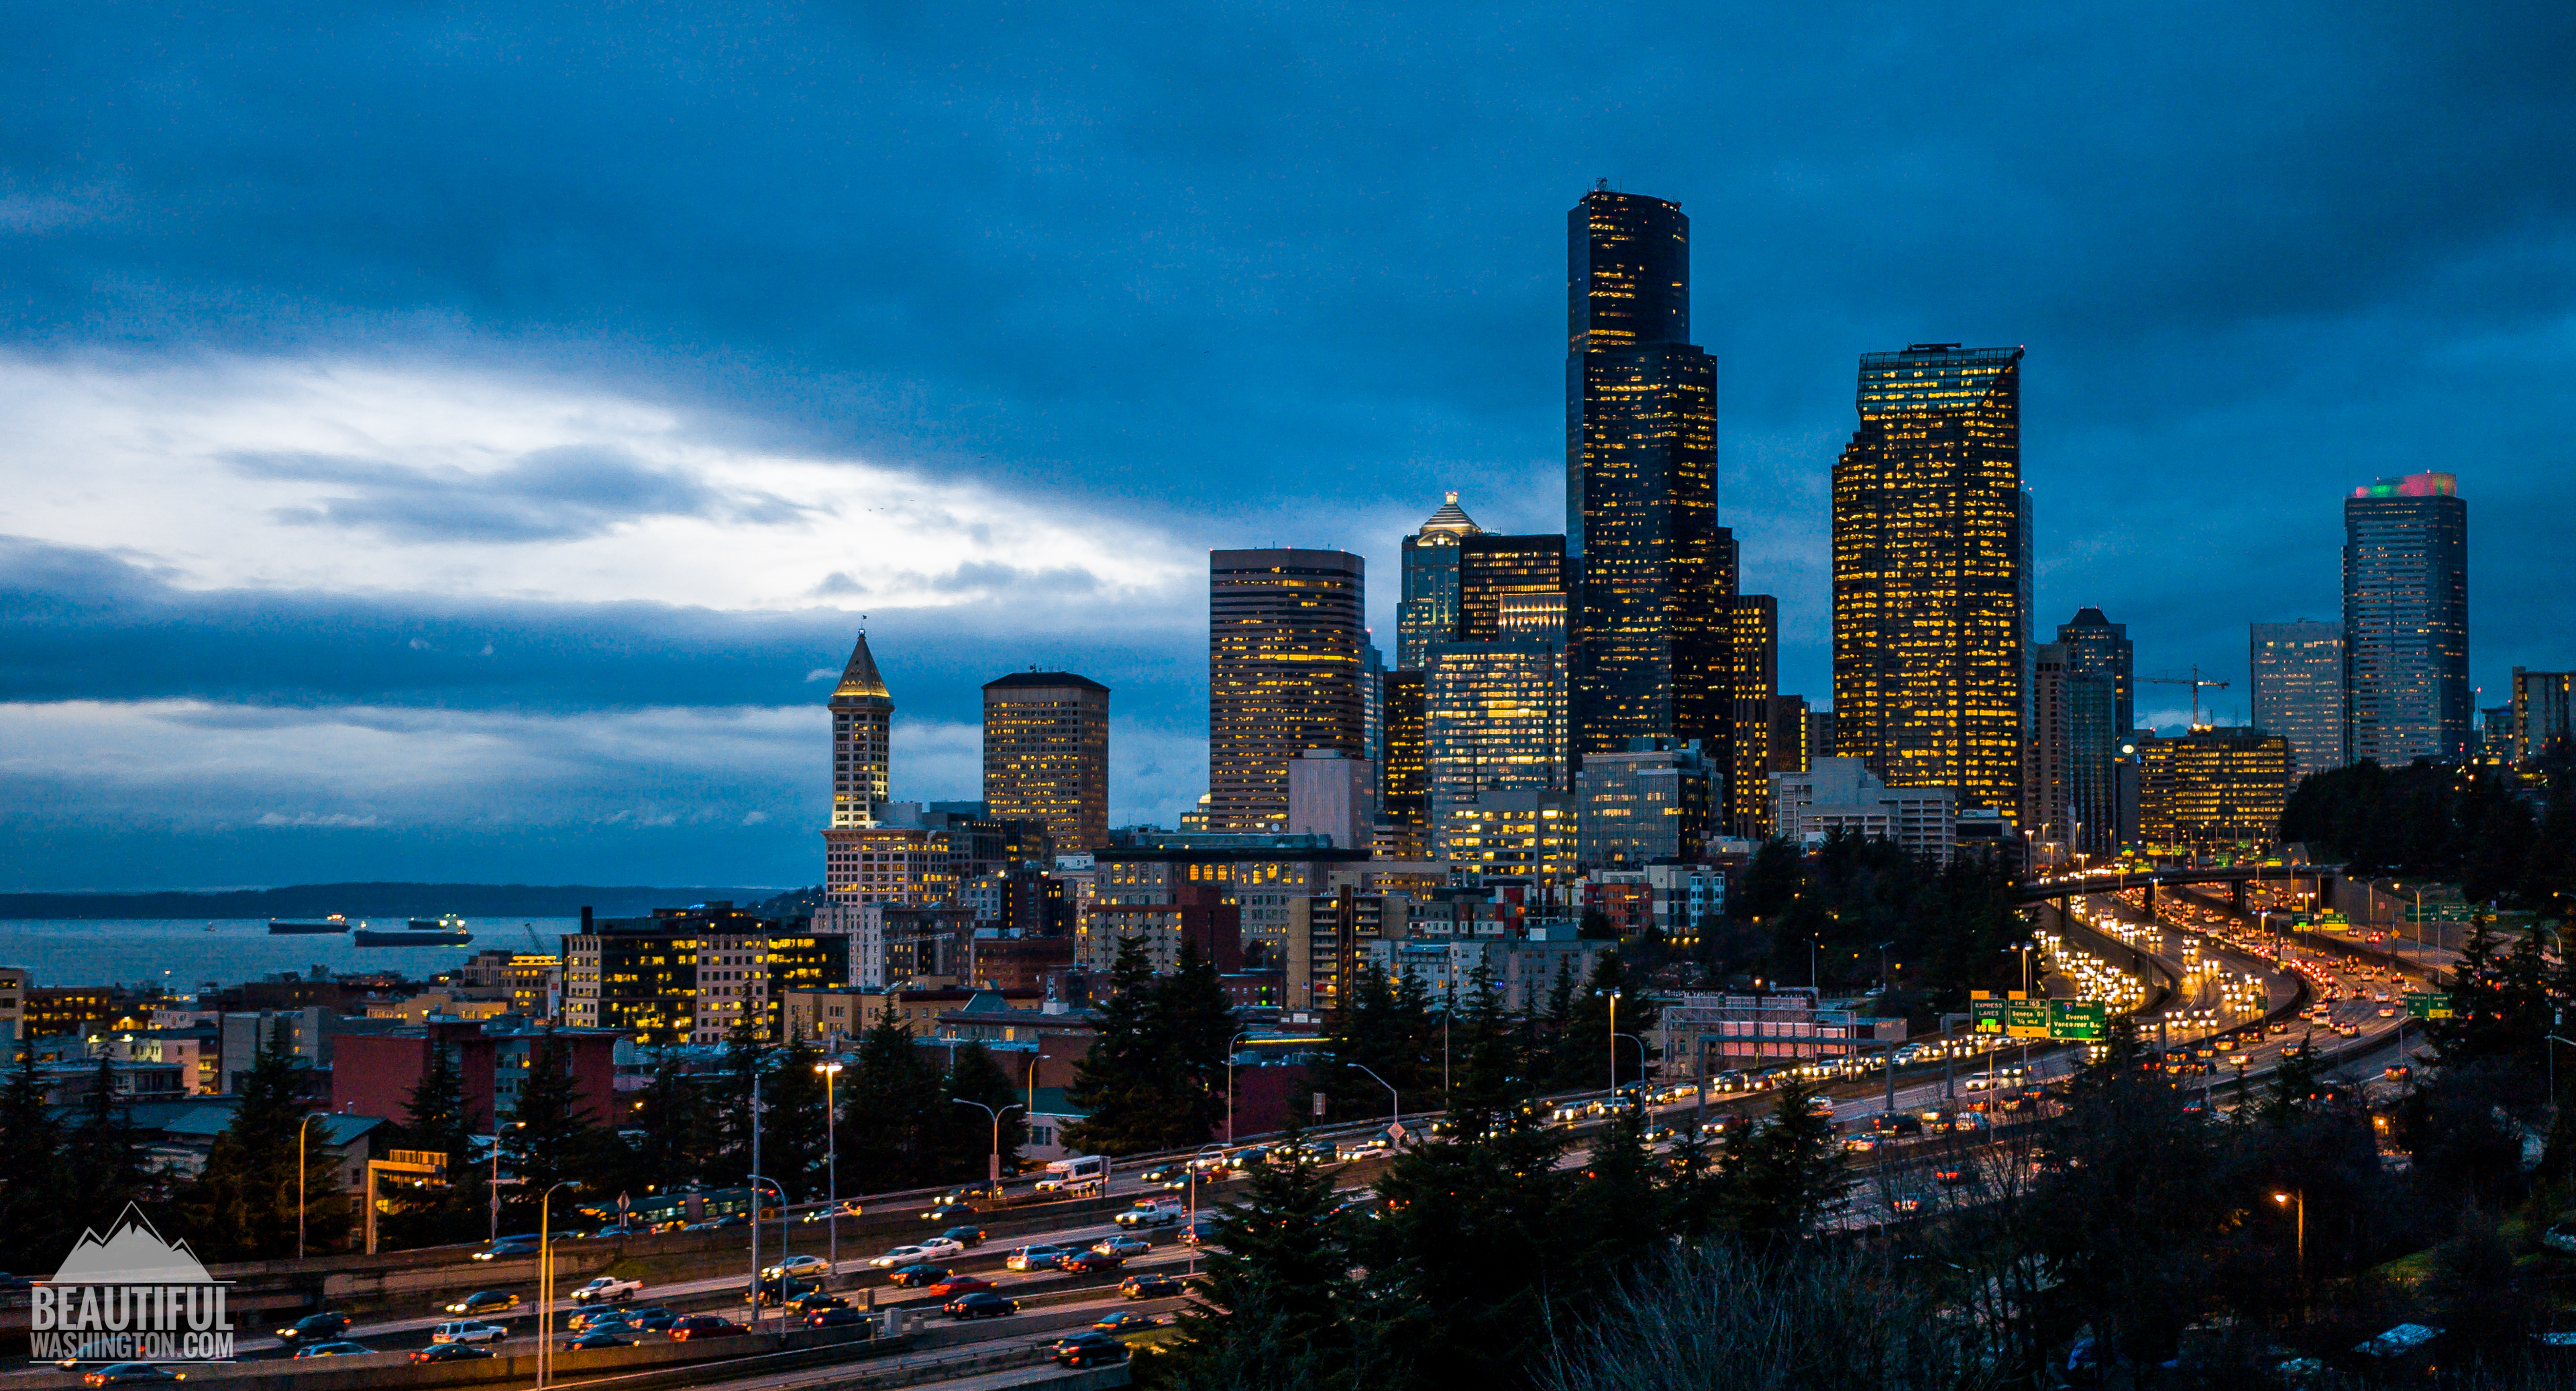 ... City is considered to be a top destination in the Pacific Northwest